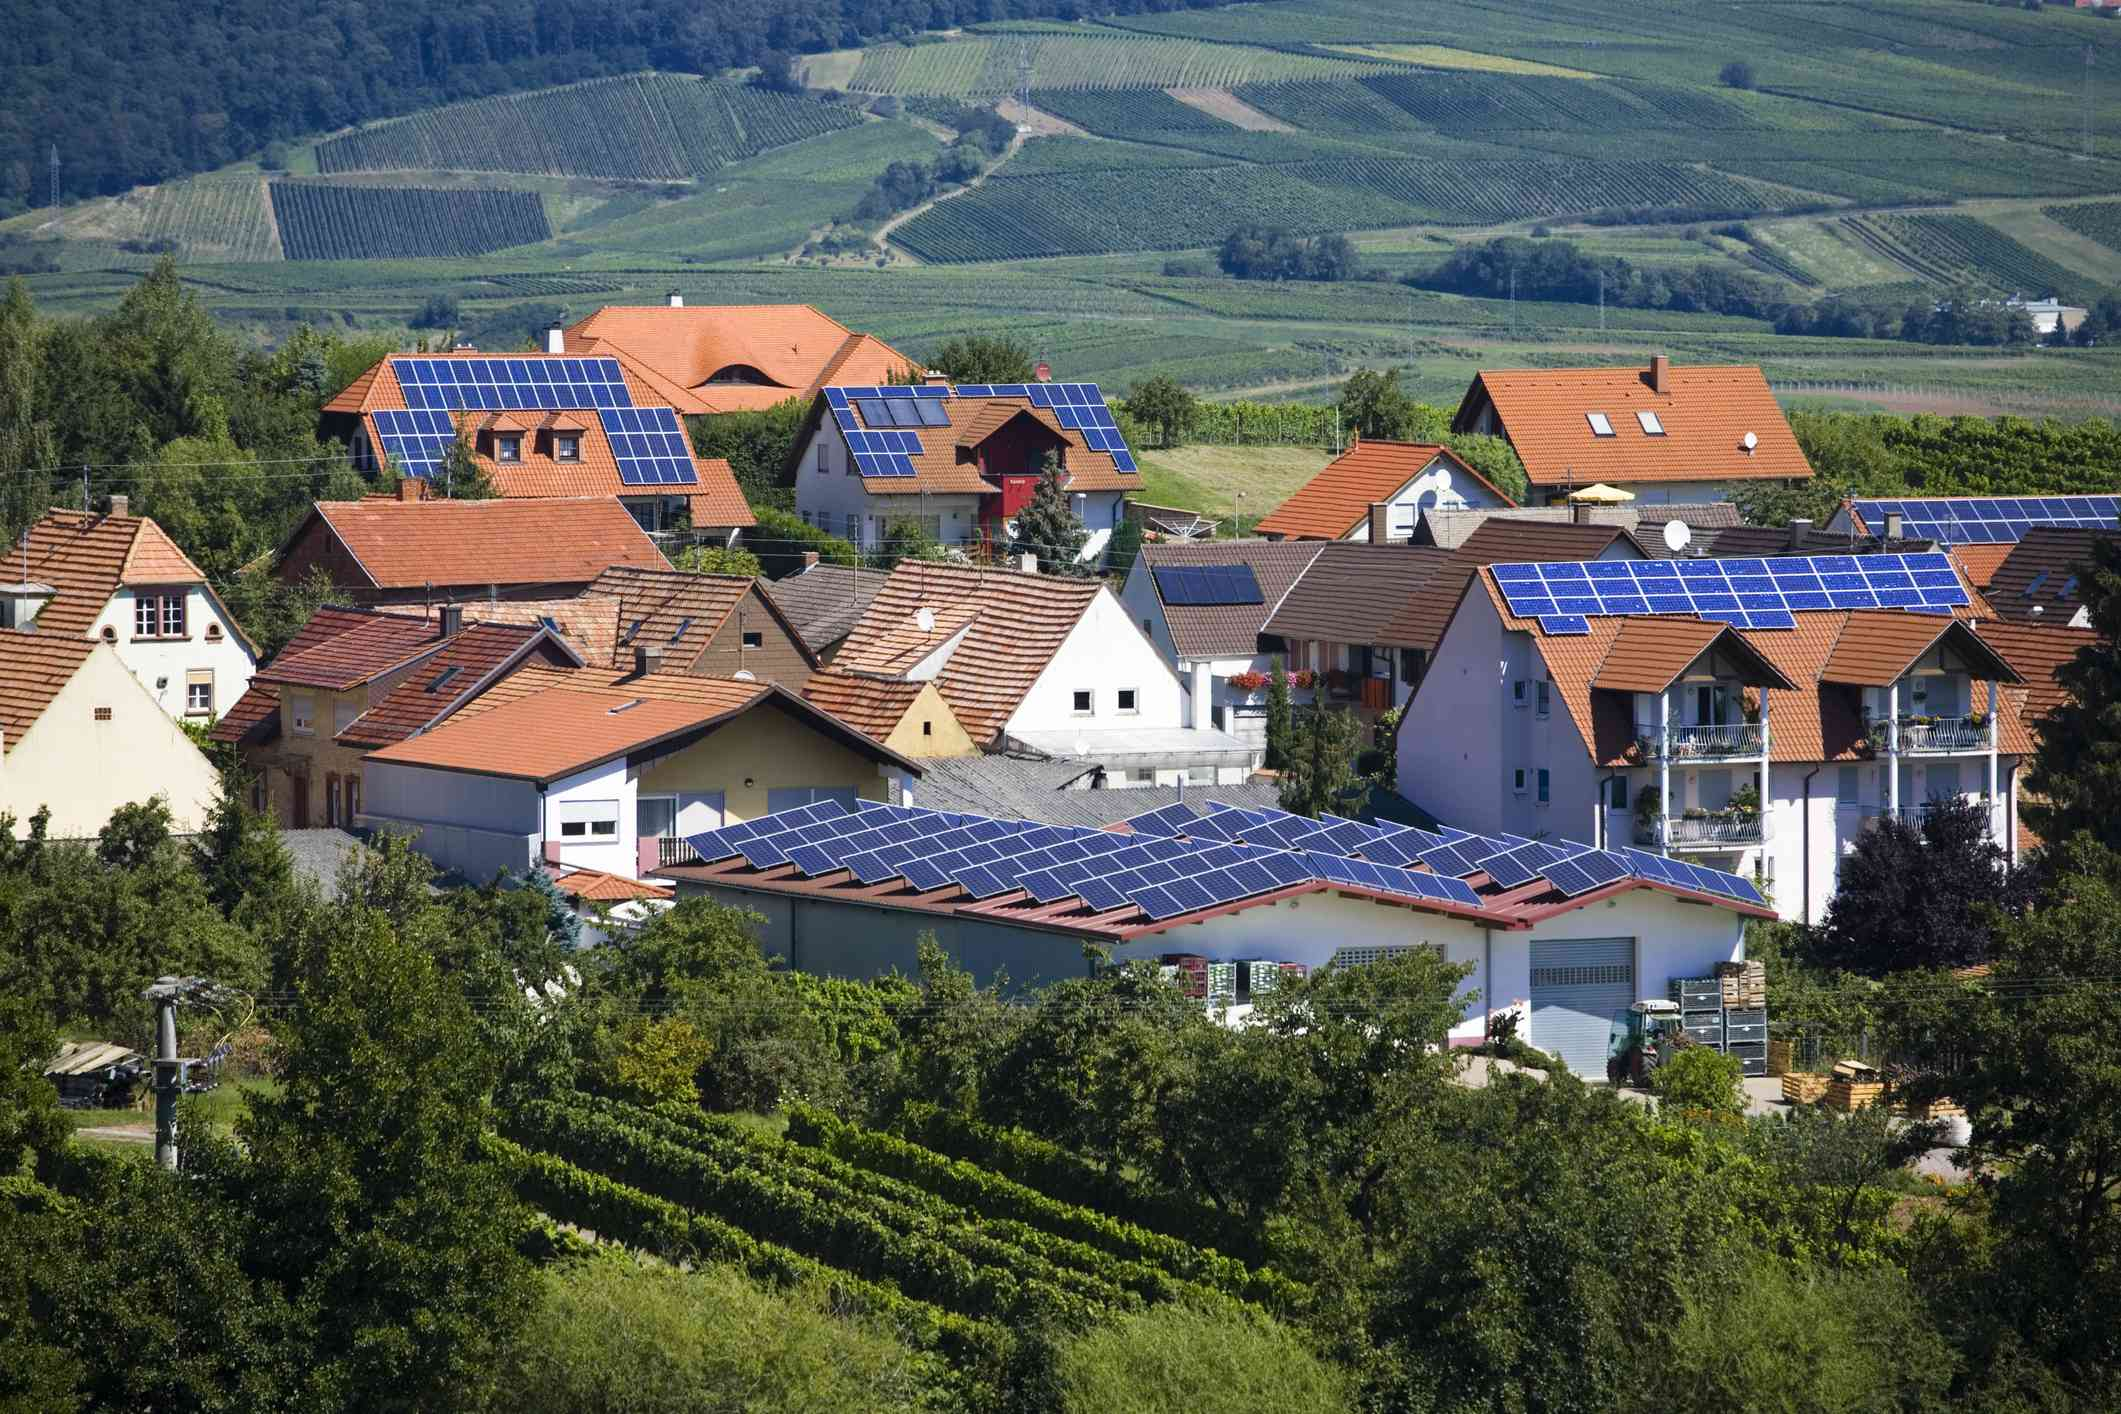 A village with homes that have solar panels.